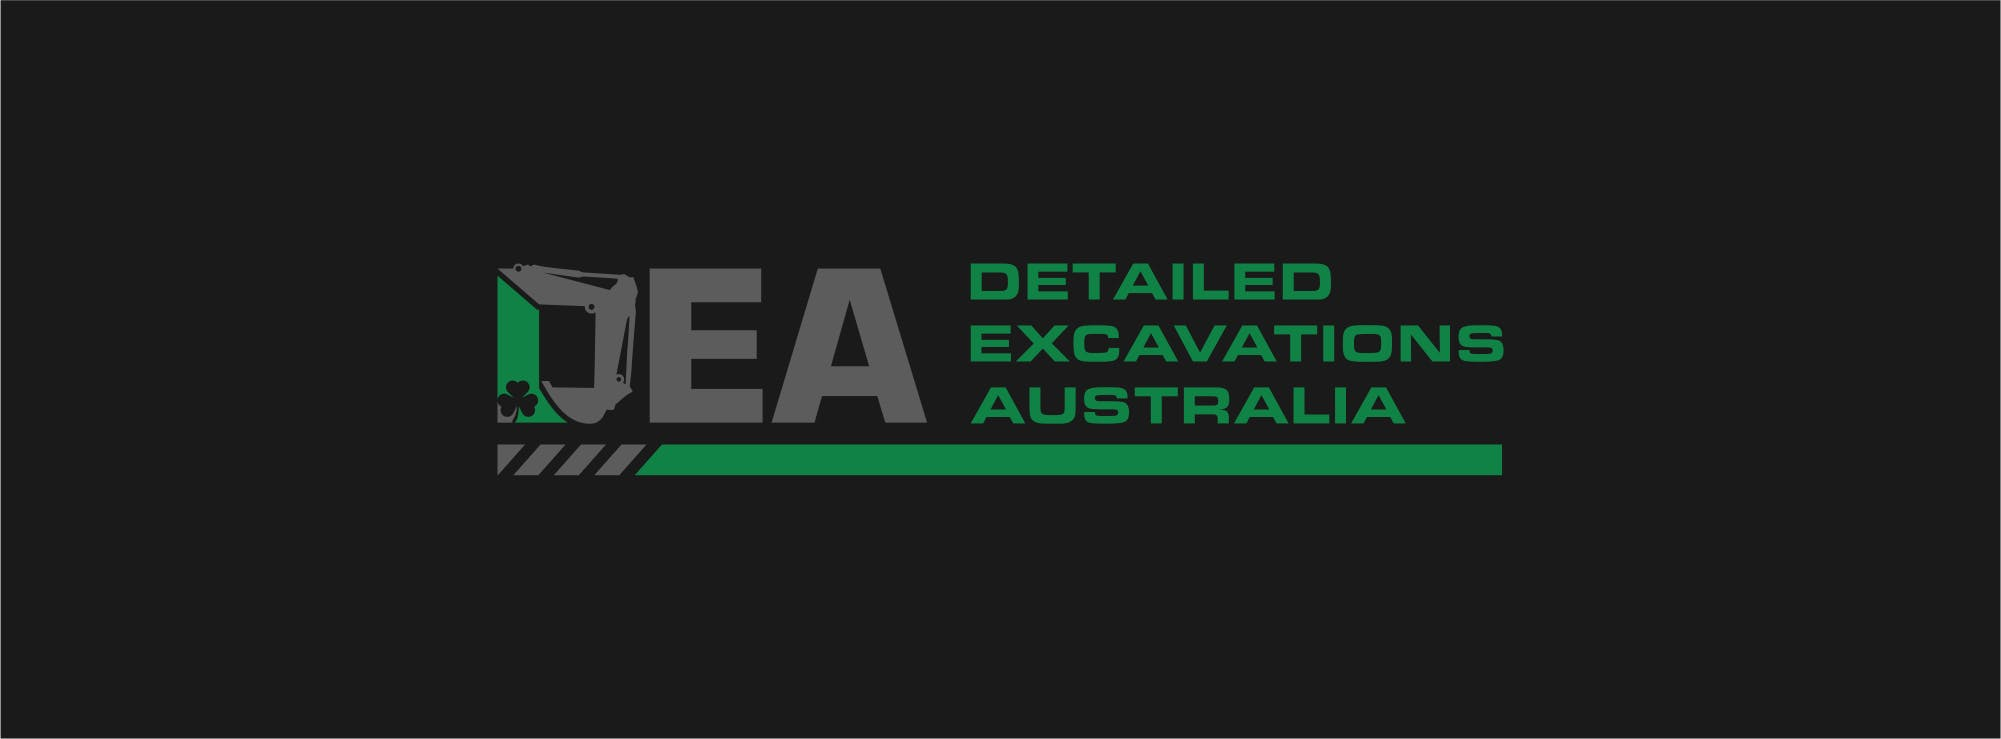 Detailed Excavations Australia